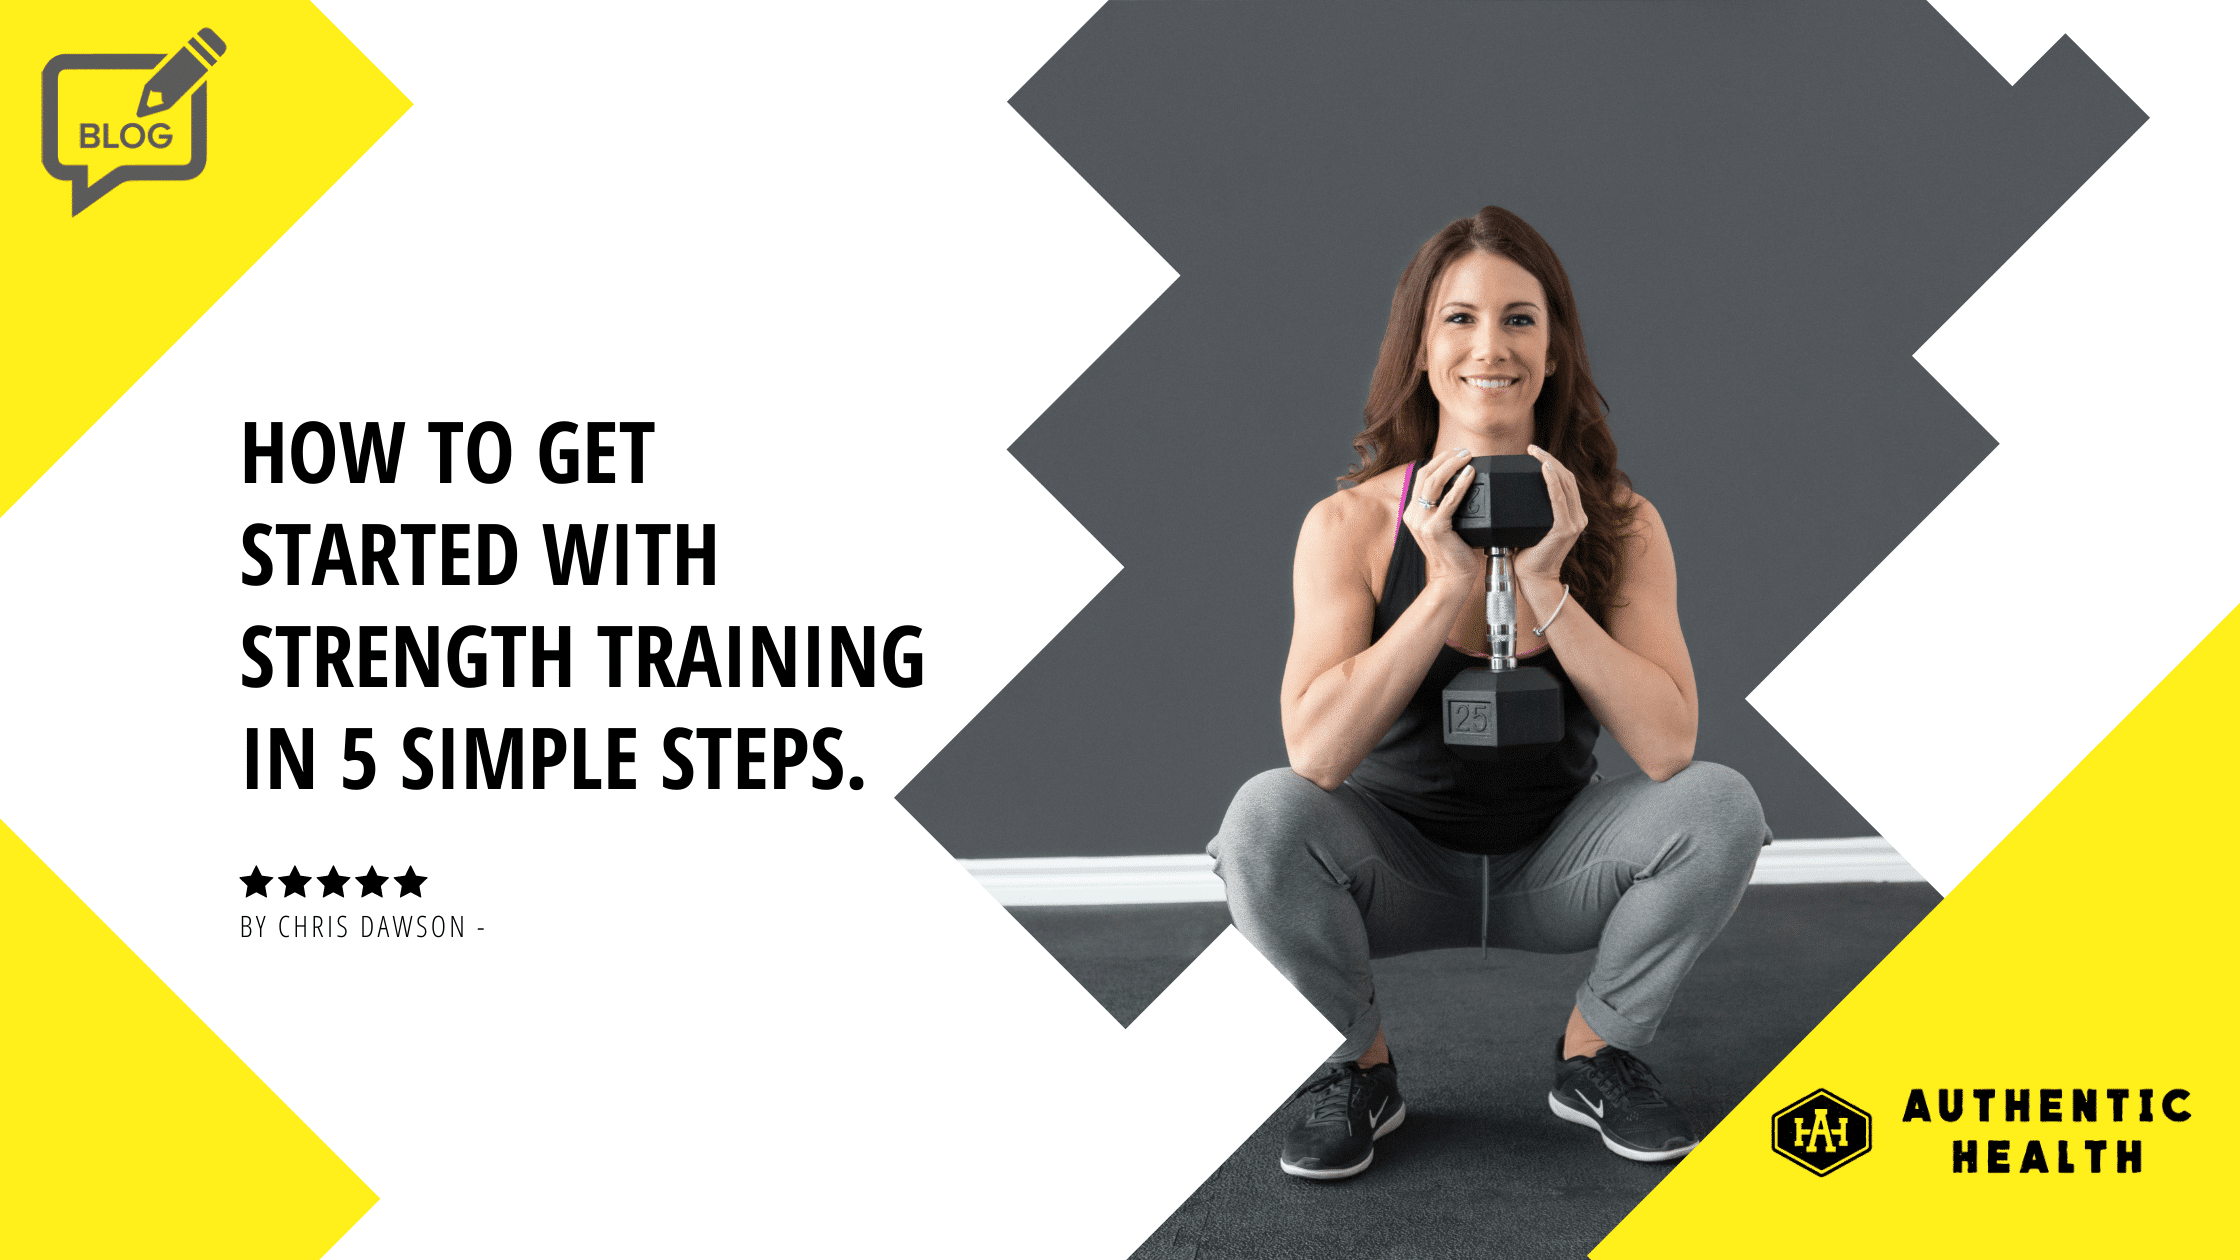 woman smiling while performing a squat exercise with weight